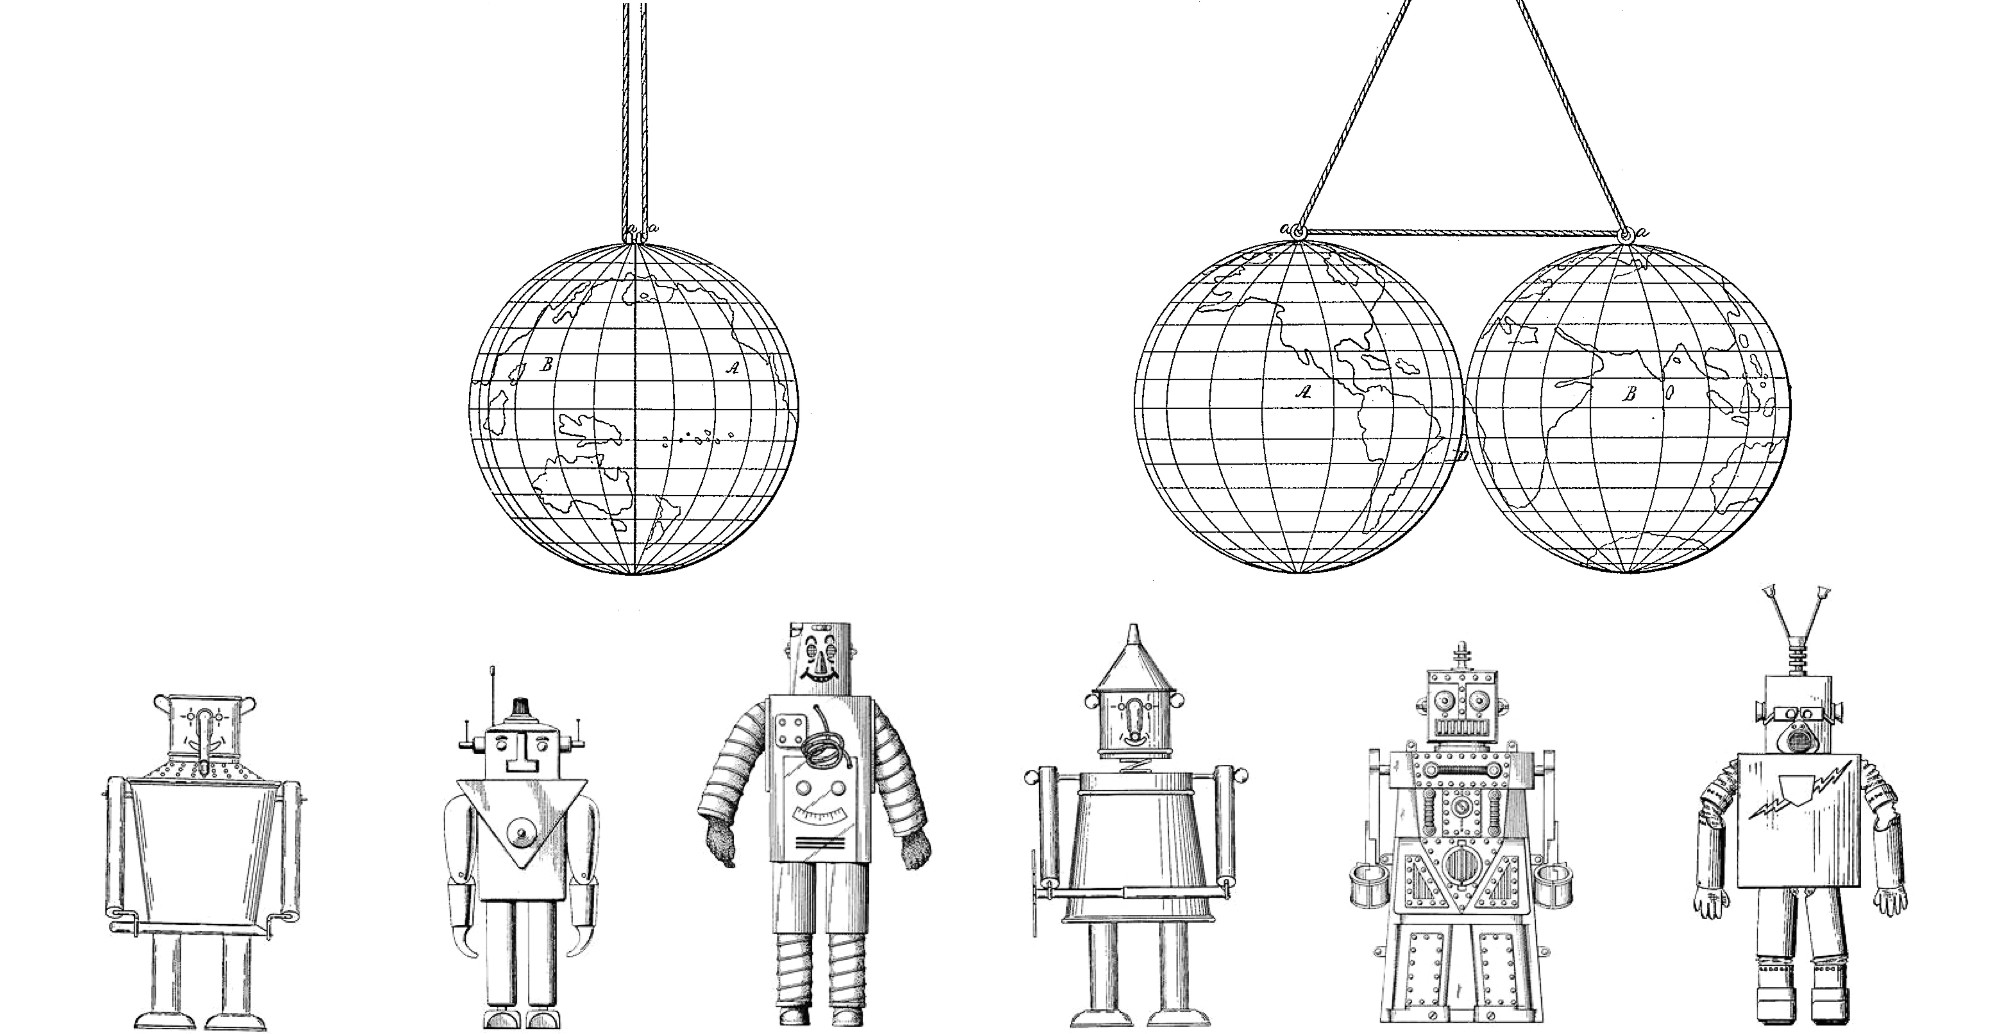 Illustrations from U.S. Patent Office filings for globes and robots